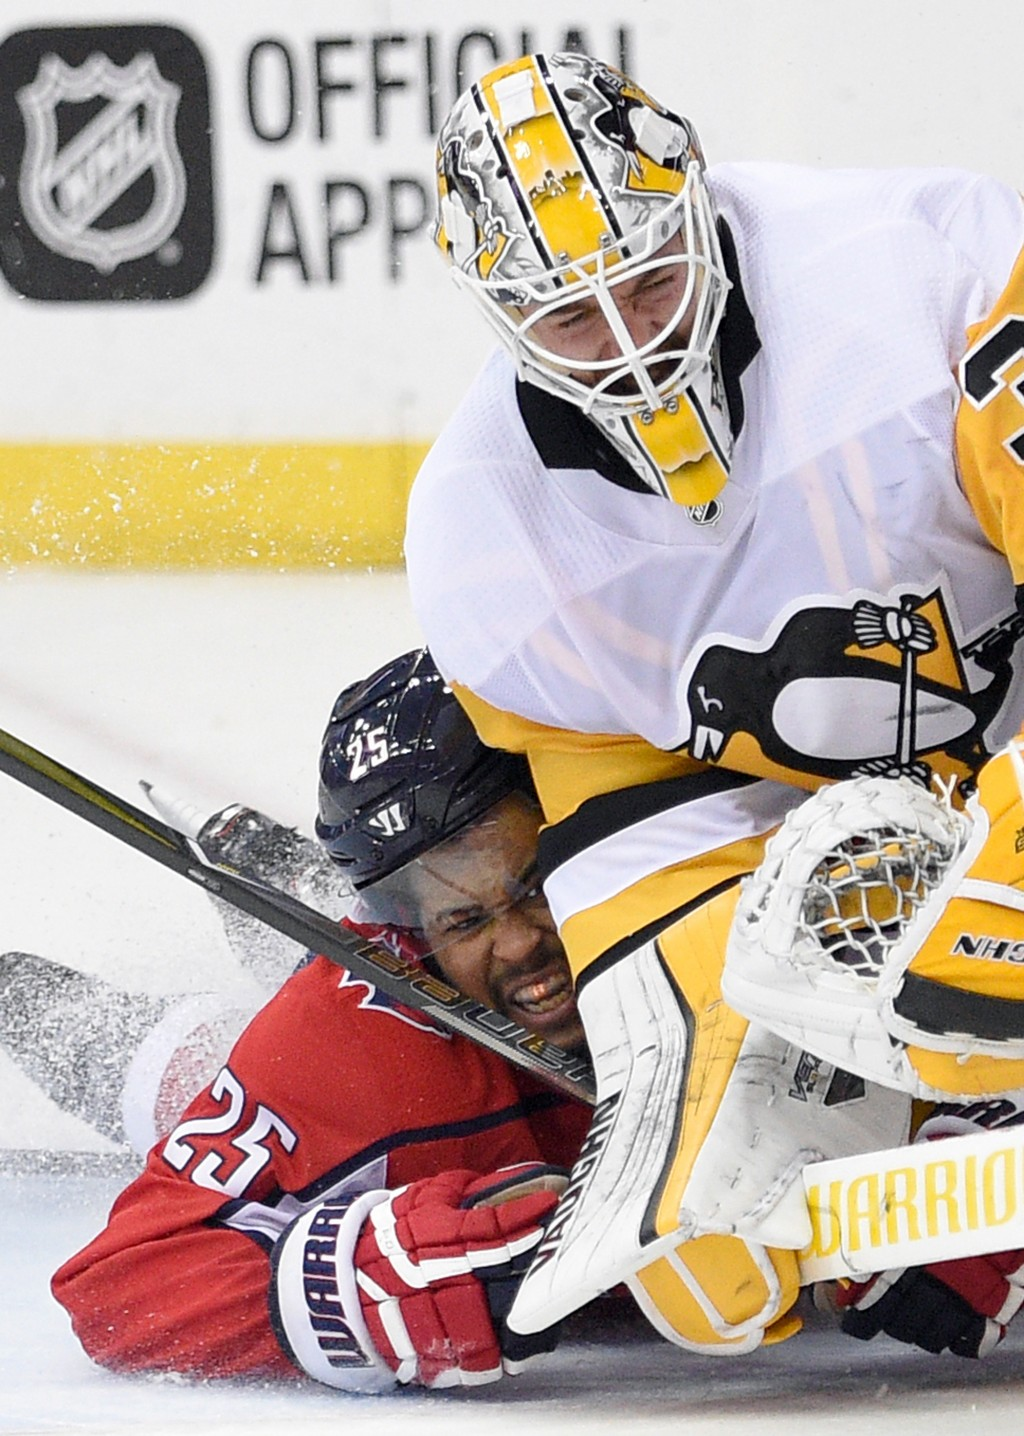 Washington Capitals right wing Devante Smith-Pelly, left, collides into Pittsburgh Penguins goaltender Matt Murray (30) during the second period in Ga...